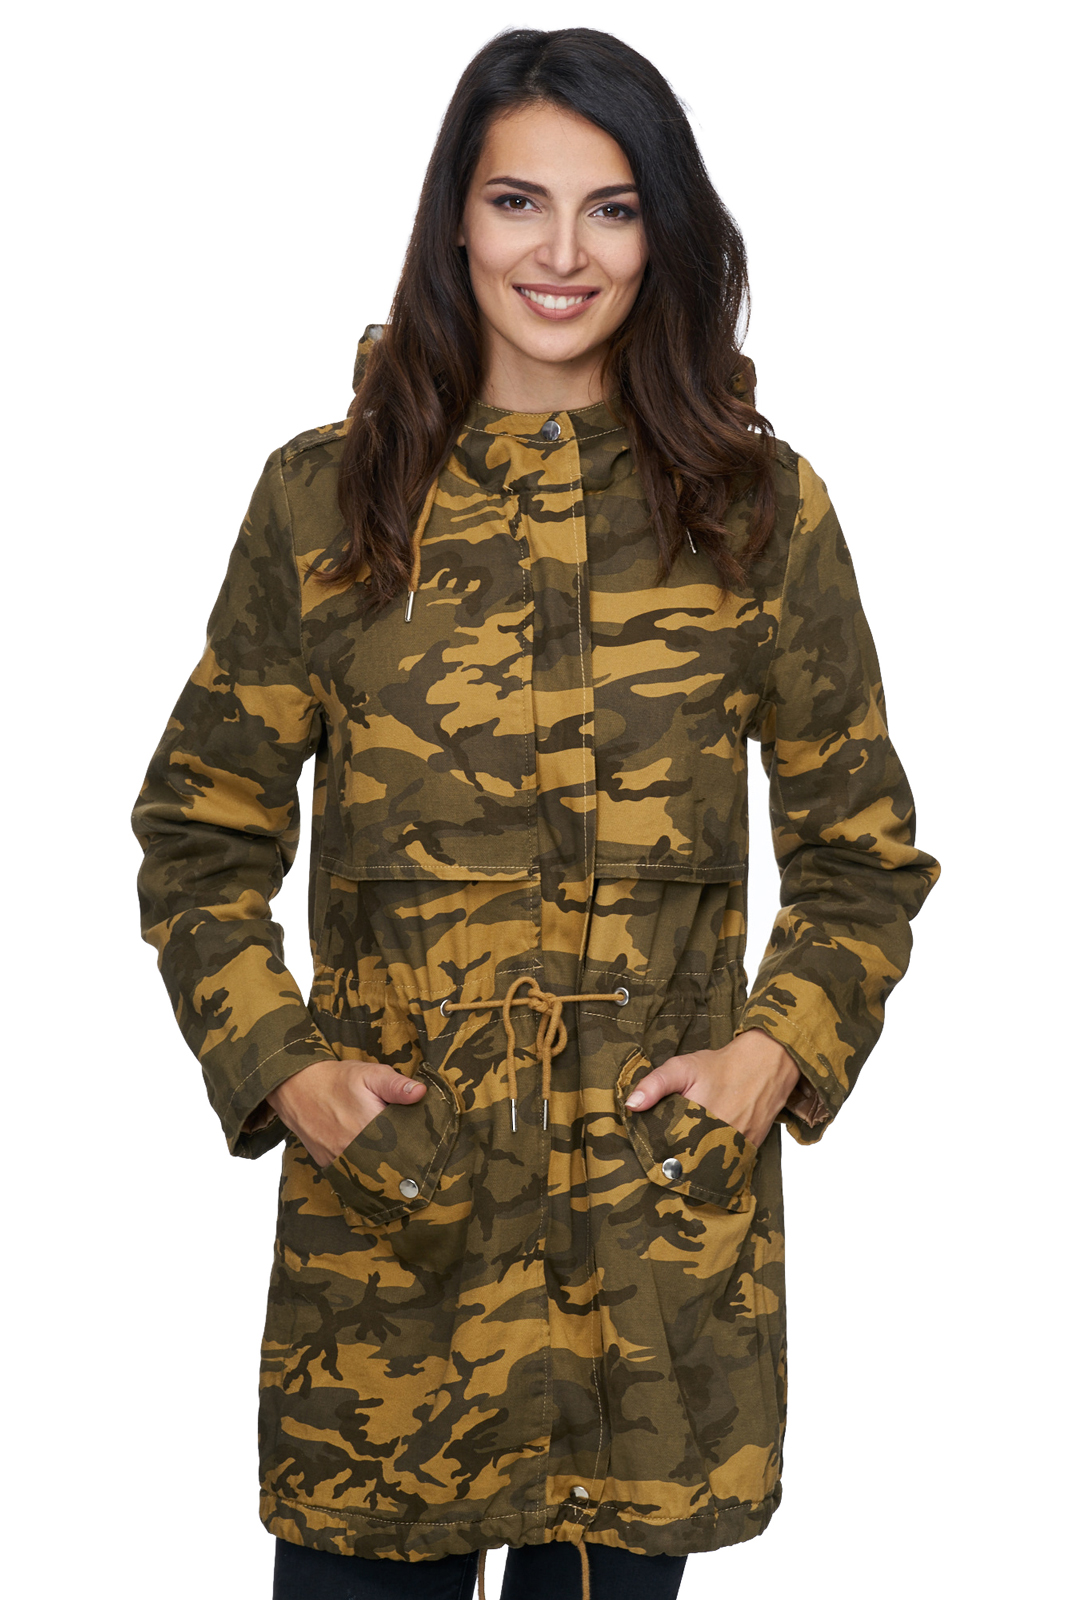 damen winter jacke camouflage mantel warm parka gr n gelb d 235 neu. Black Bedroom Furniture Sets. Home Design Ideas